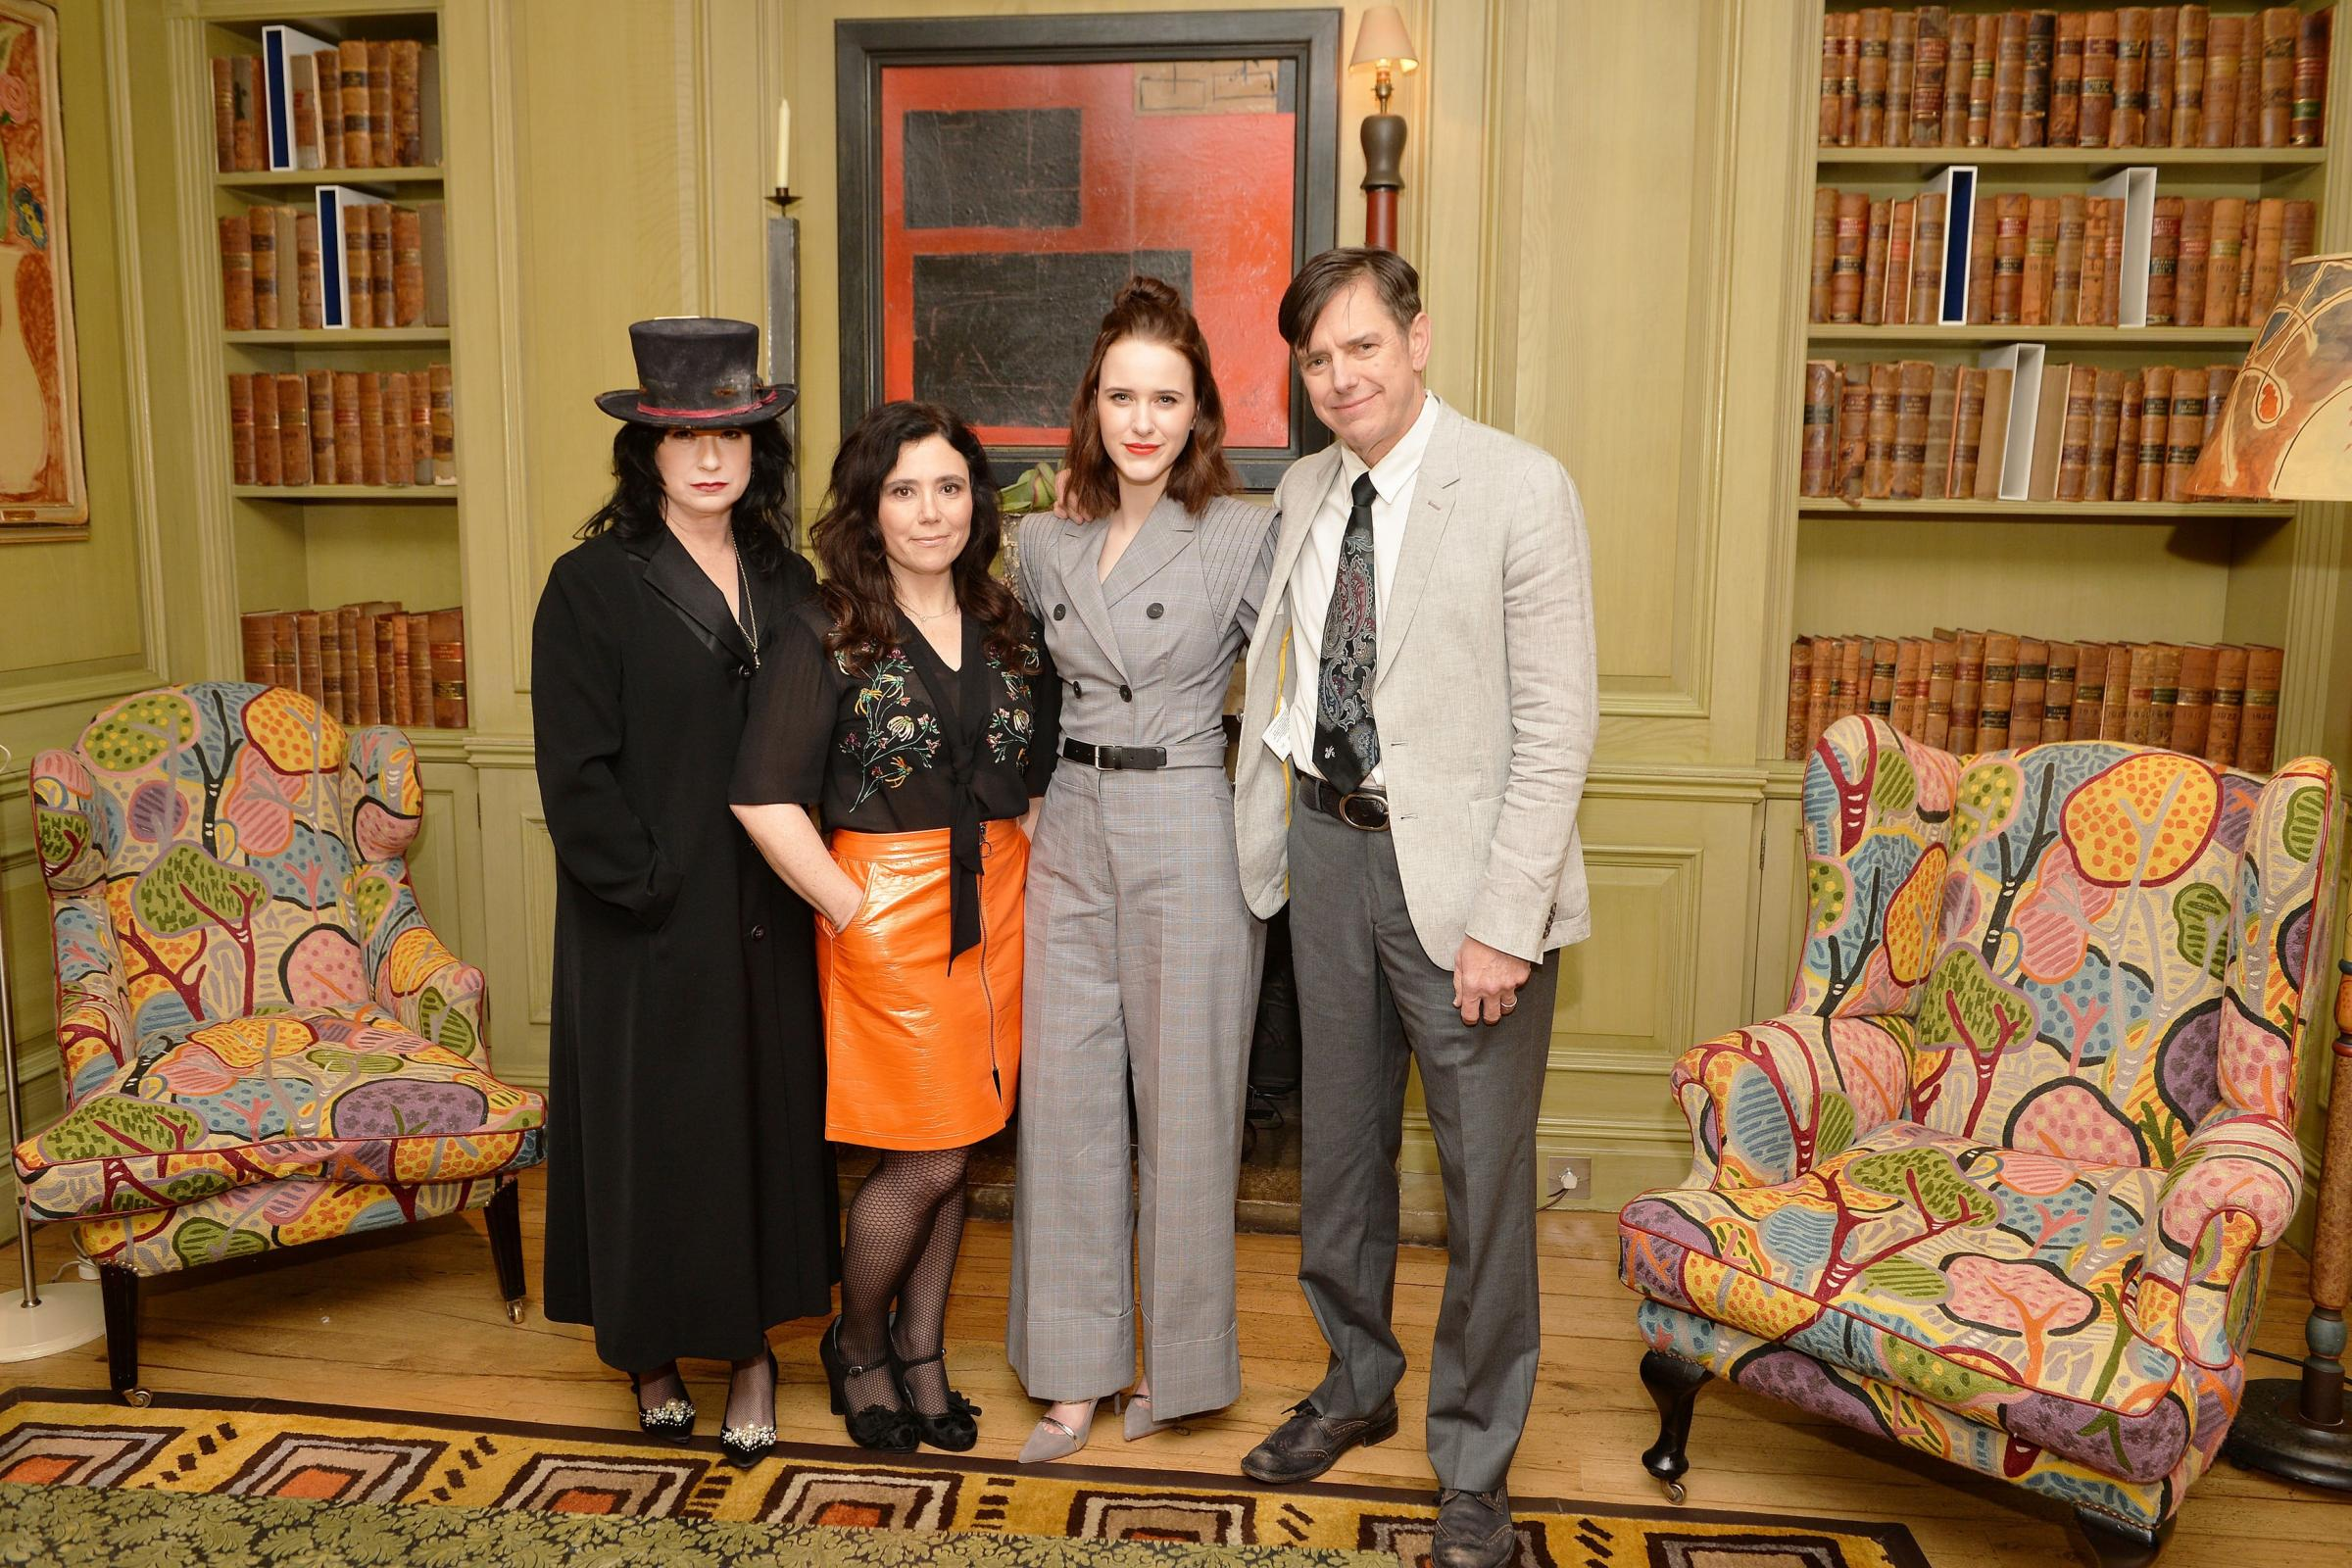 Amy Sherman-Palladino (left) and Daniel Palladino with cast members Alex Borstein and Rachel Brosnahan (second right) as they attend the London screening of The Marvellous Mrs Maisel (John Stillwel/PA)